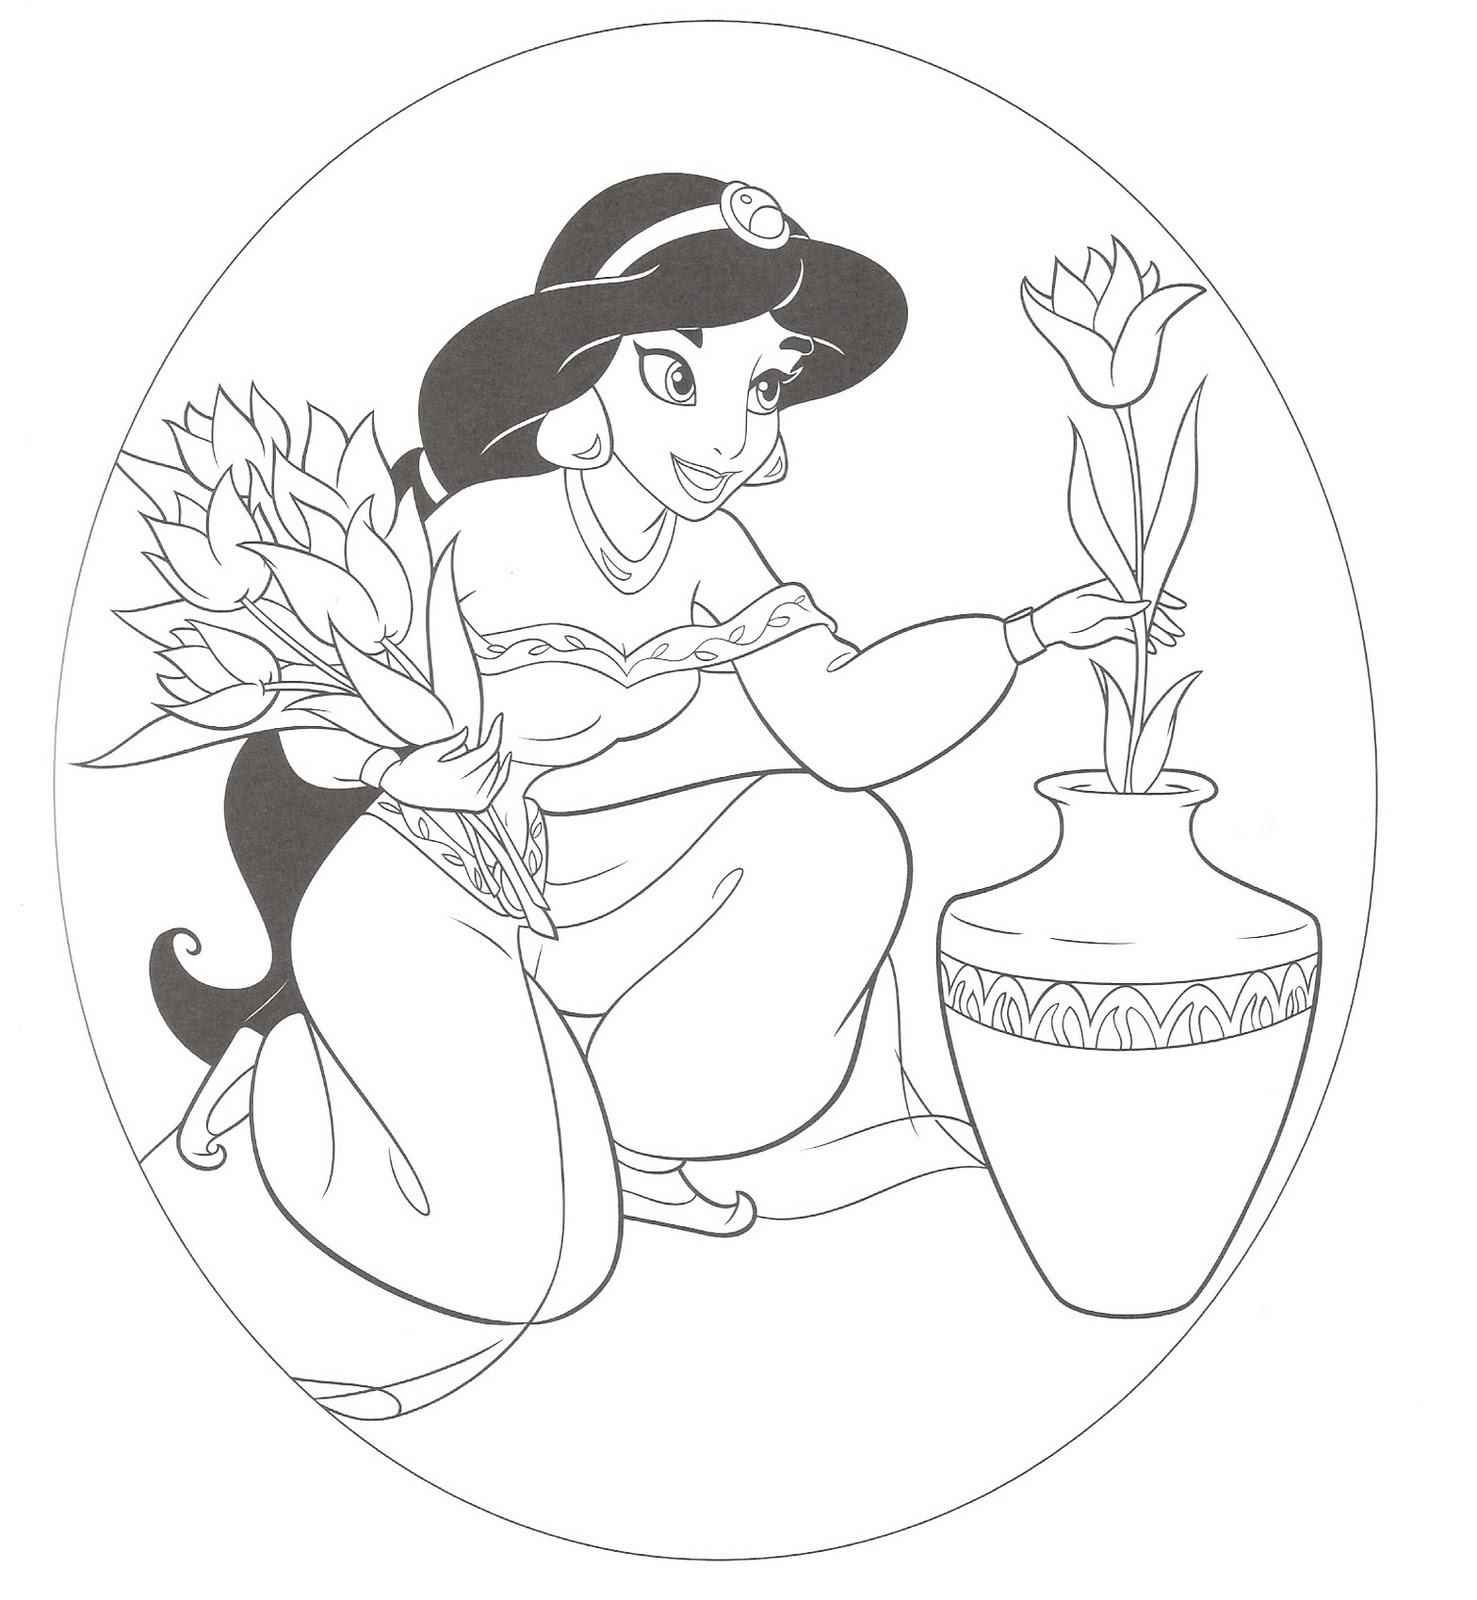 Disney Princess Coloring Pages For Kids Princess Coloring Books Free Coloring Sheets